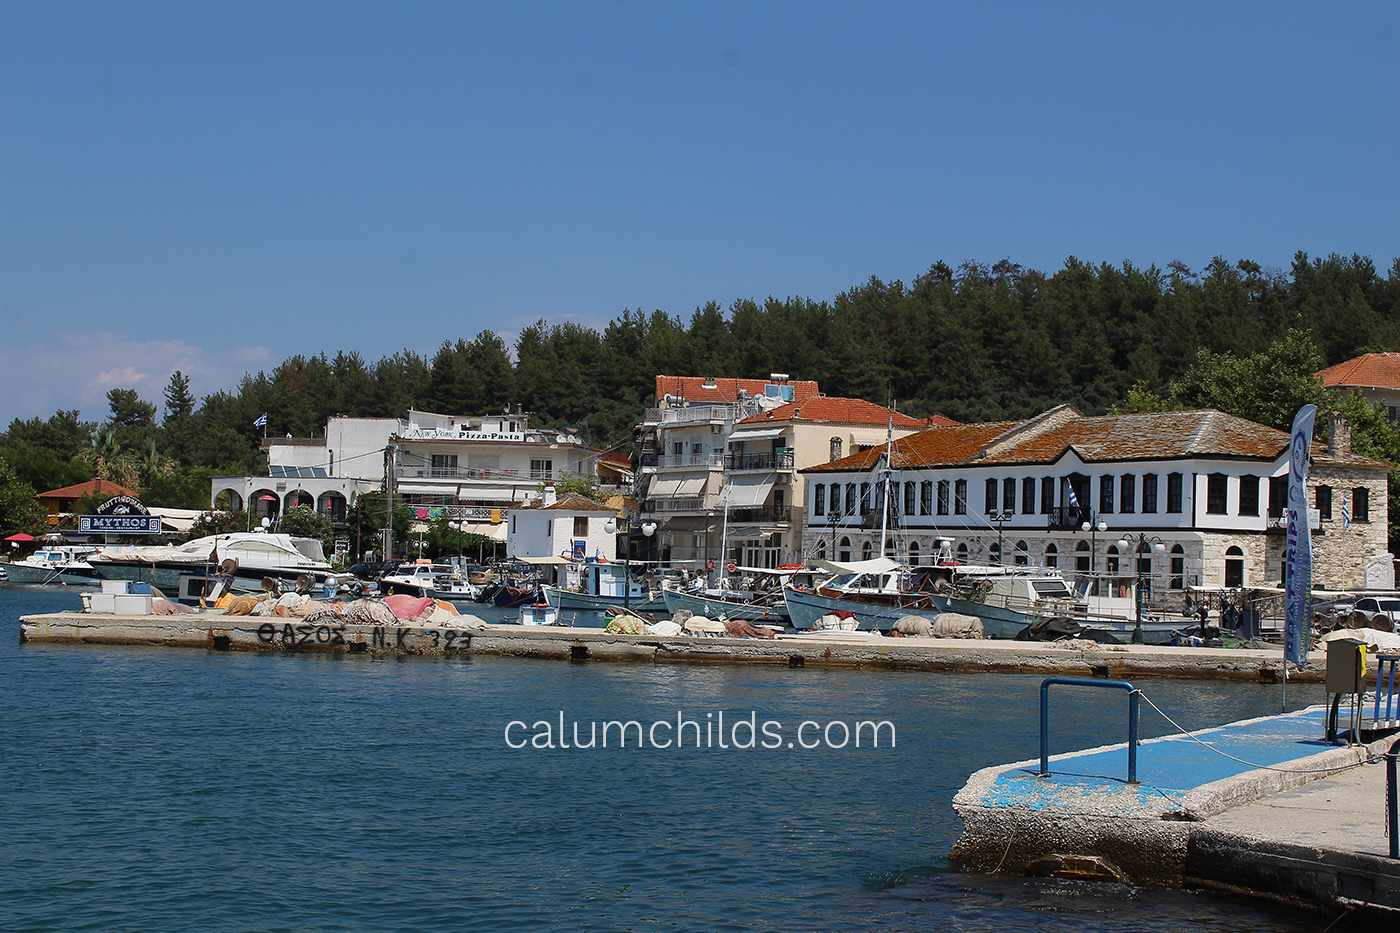 A series of traditional white Greek buildings with red roof tiles, and the dark blue sea in the background.